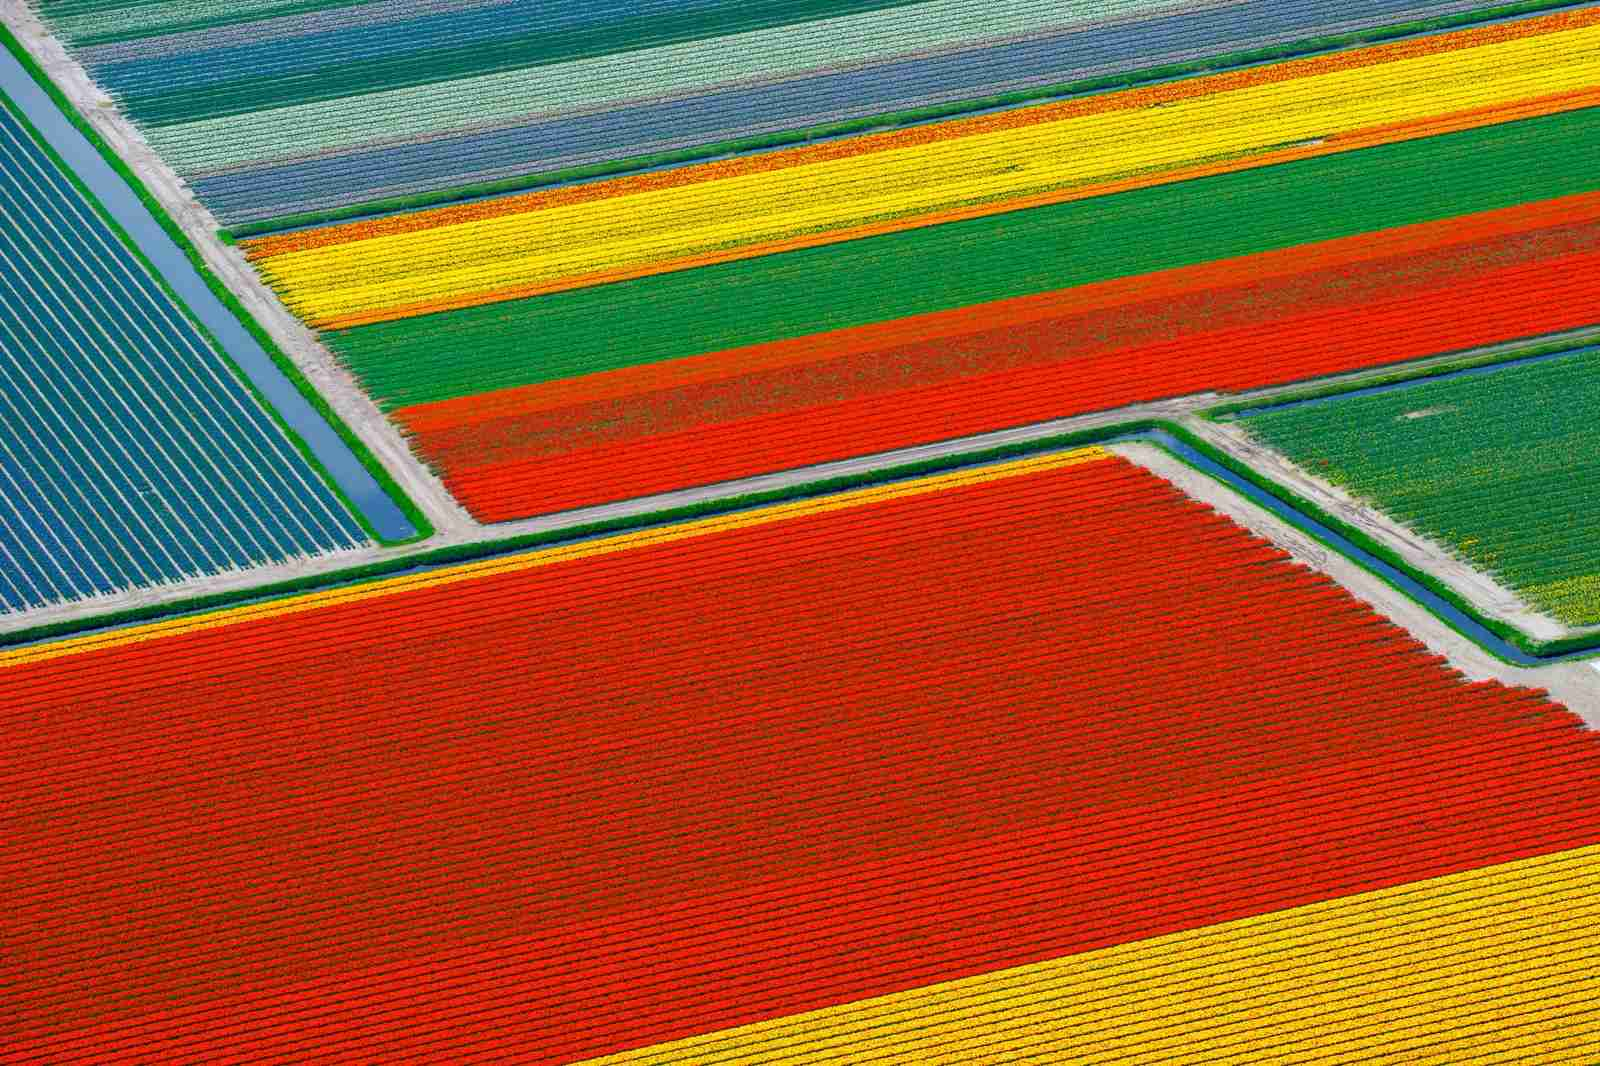 Lisse in the Netherlands and the Tulip farms. (Photo by Hollandluchtfoto/Getty Images)